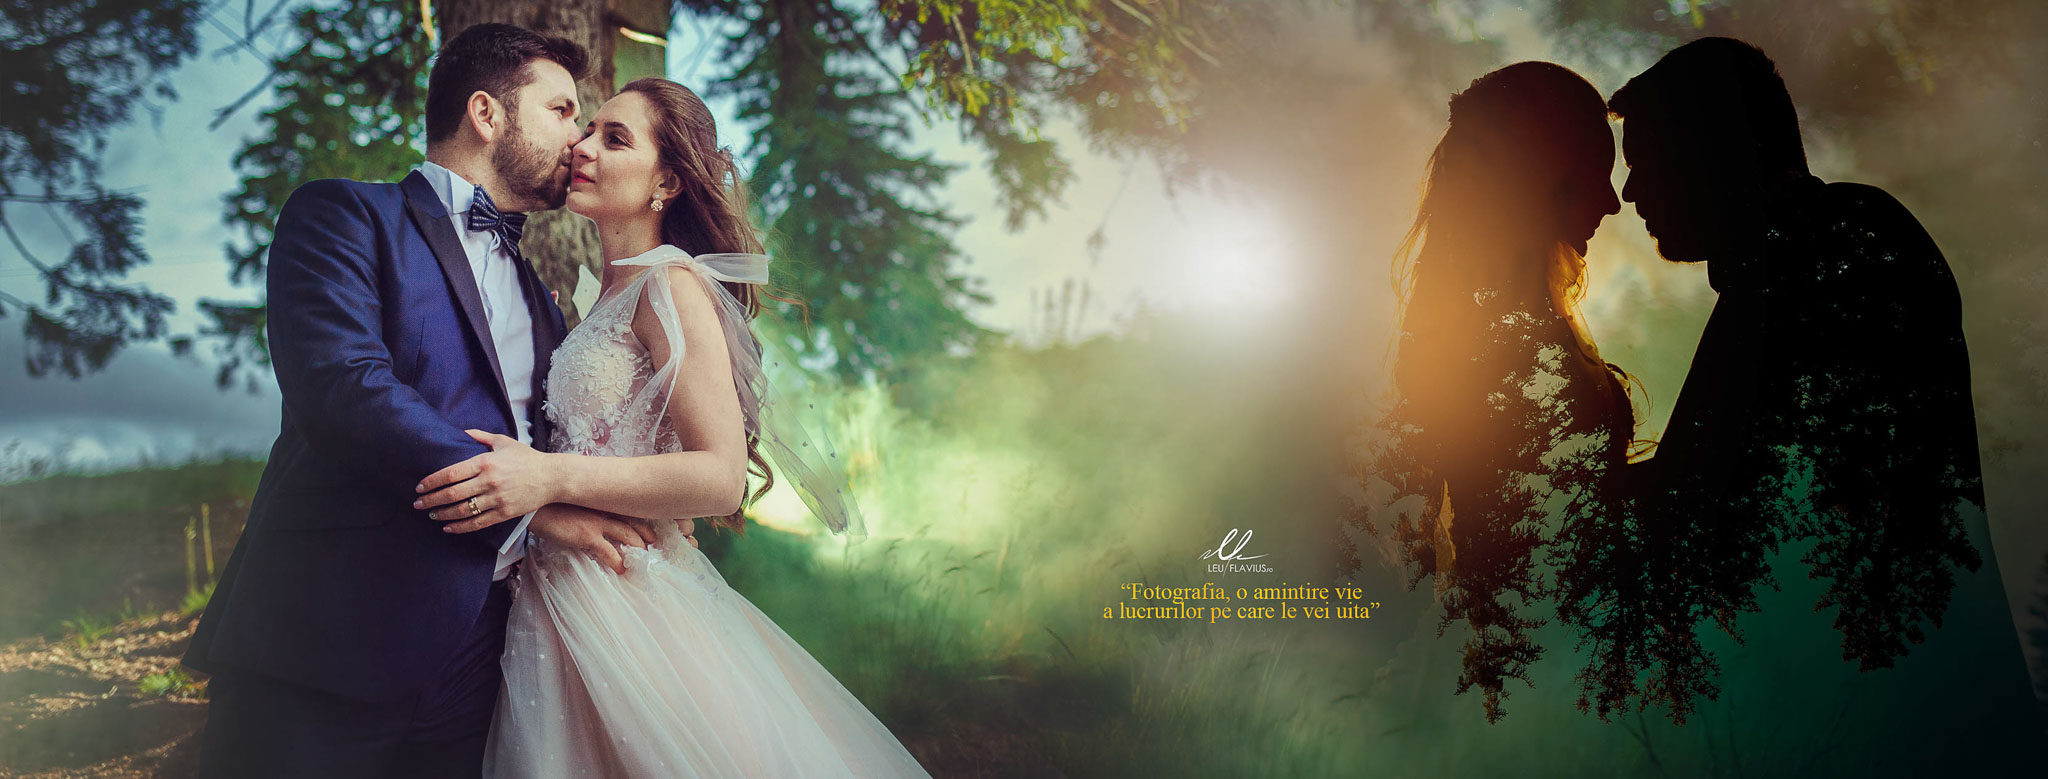 Cover - Trash the Dress - Cosmina si Ionut